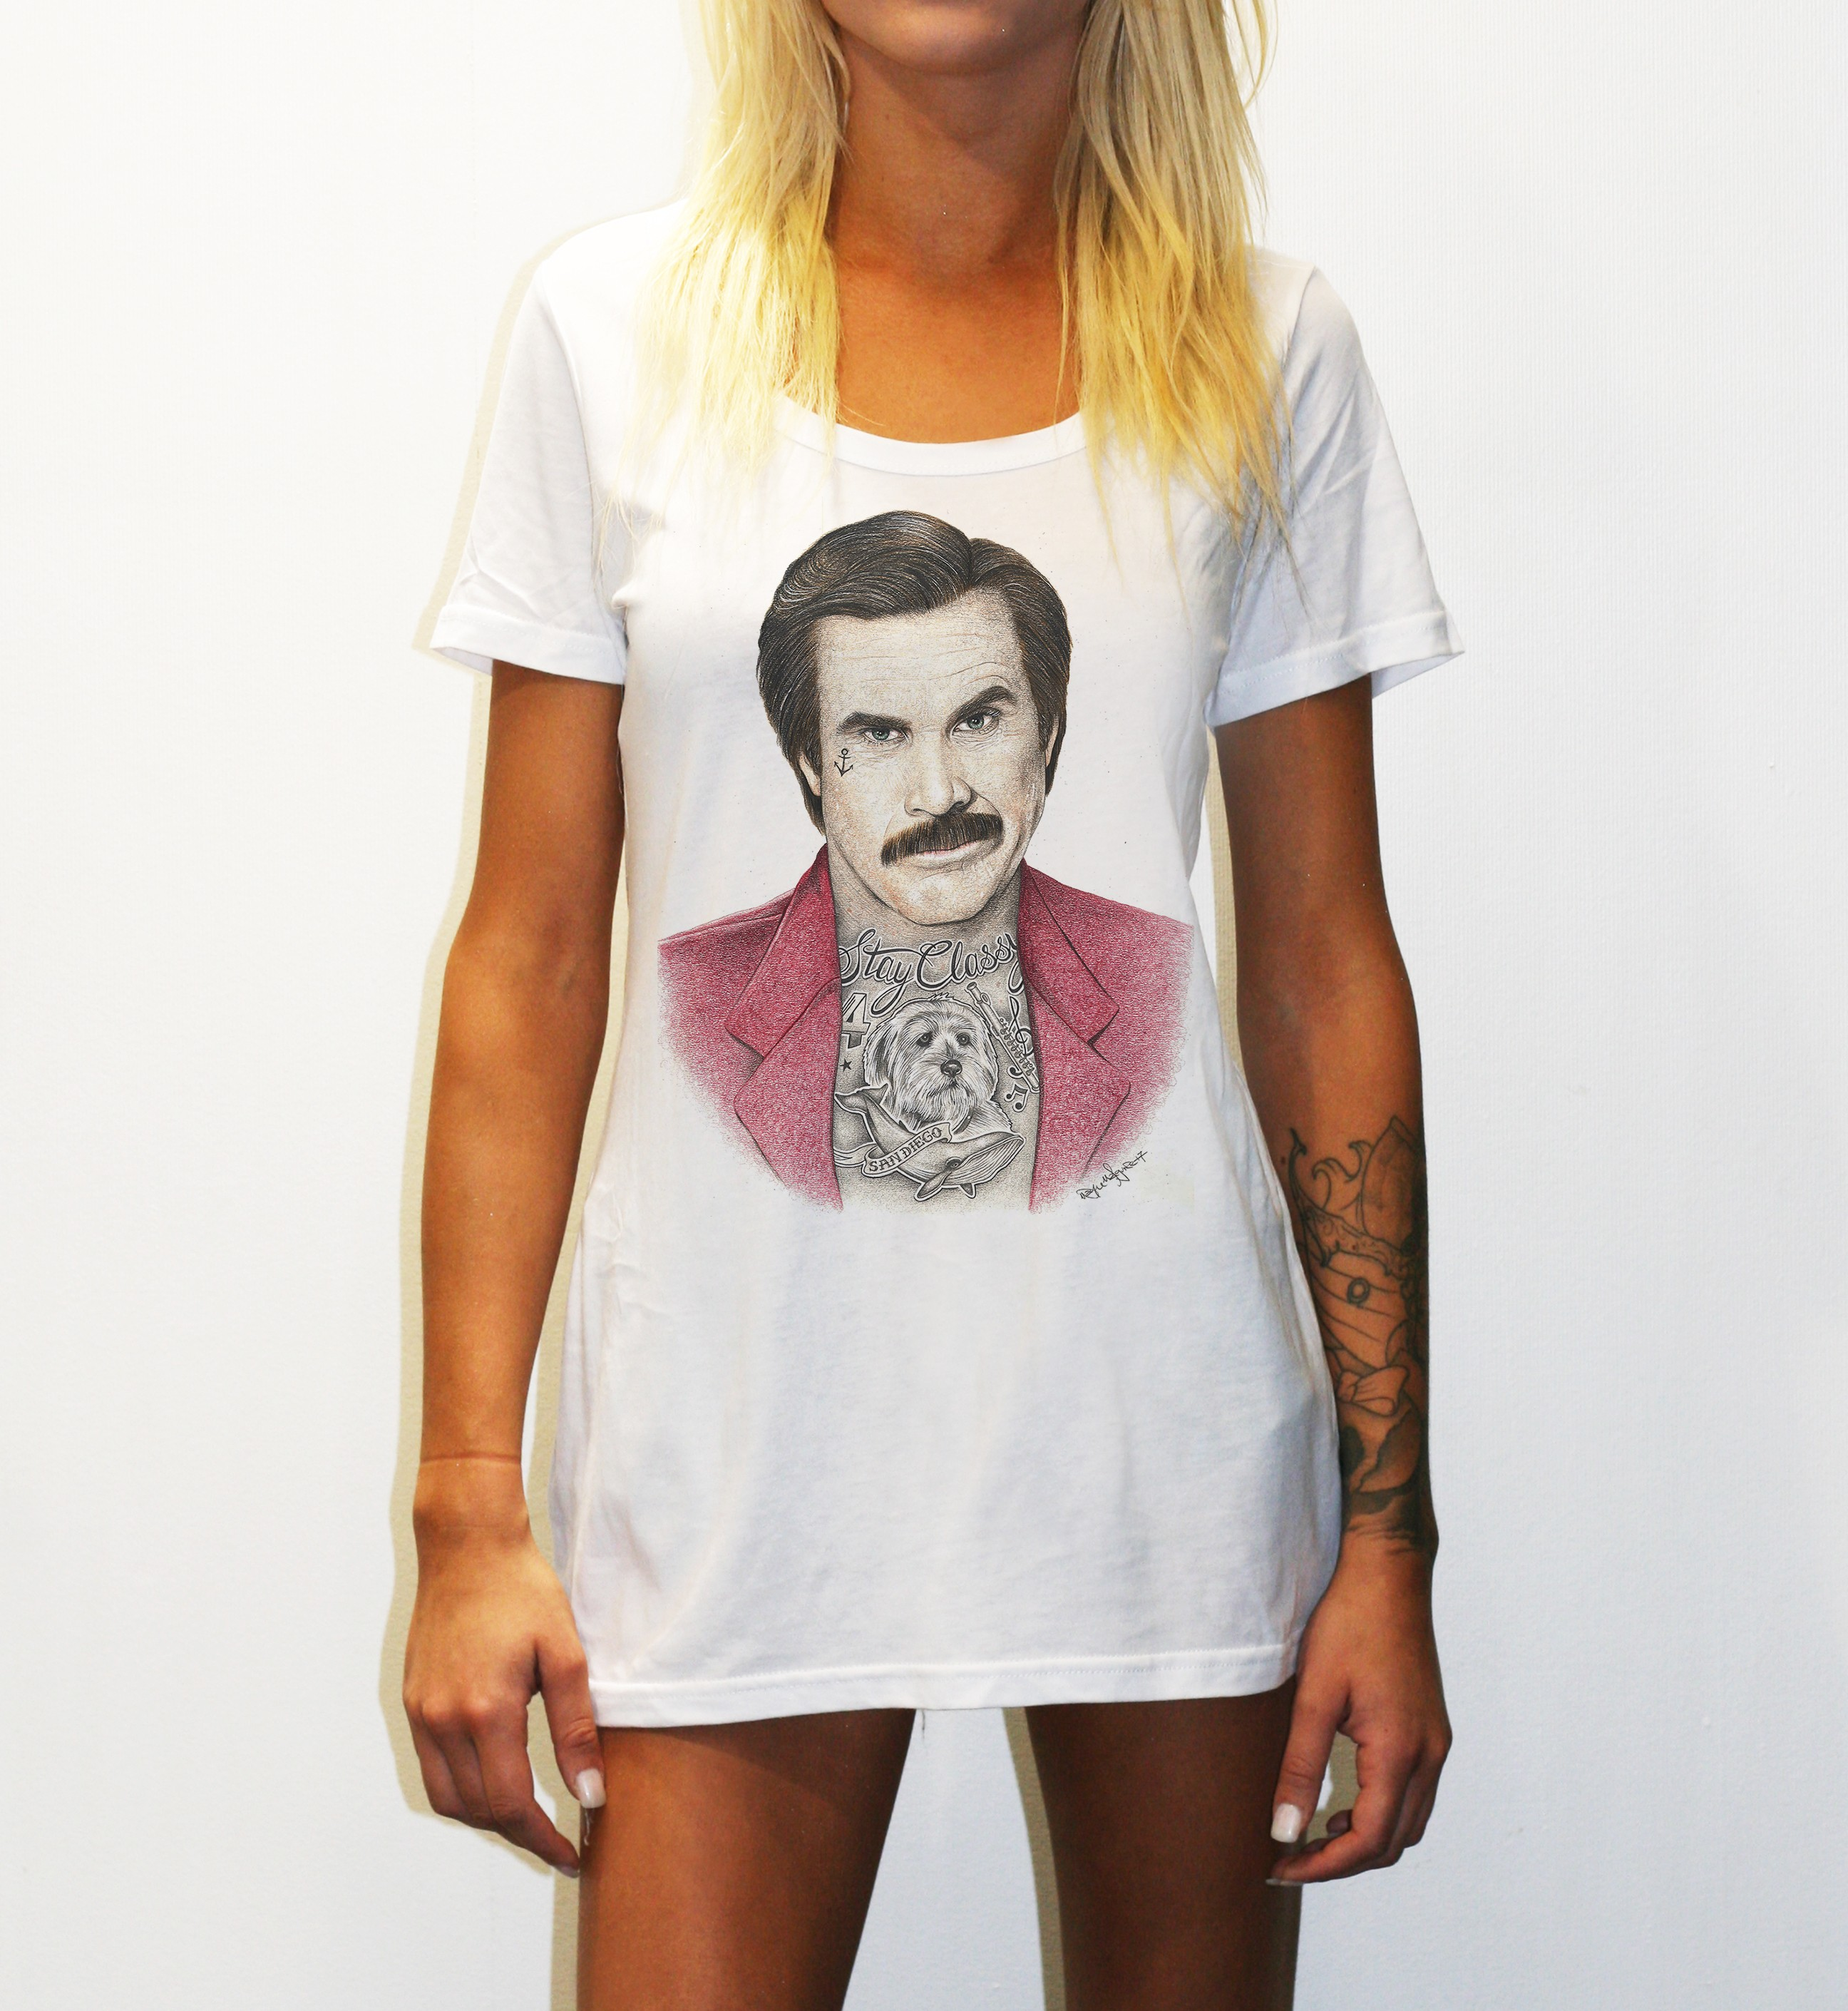 WOMENS INKED ANCHORMAN WHITE TEE, Womens Inked Anchorman White T-Shirt